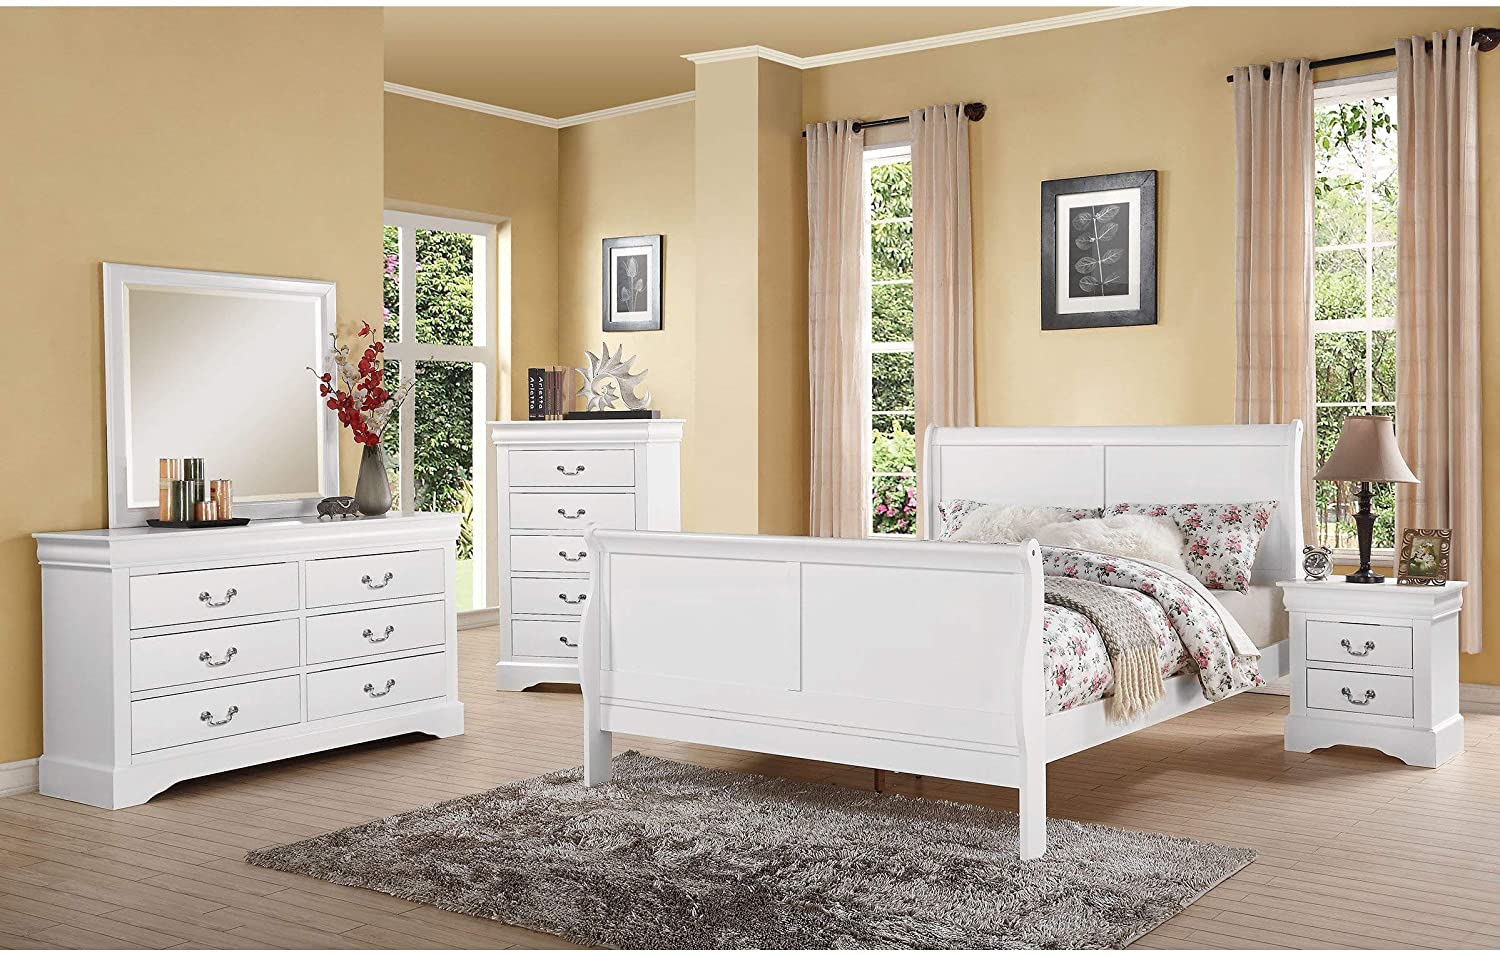 best cheap bedroom furniture sets under $500: full review